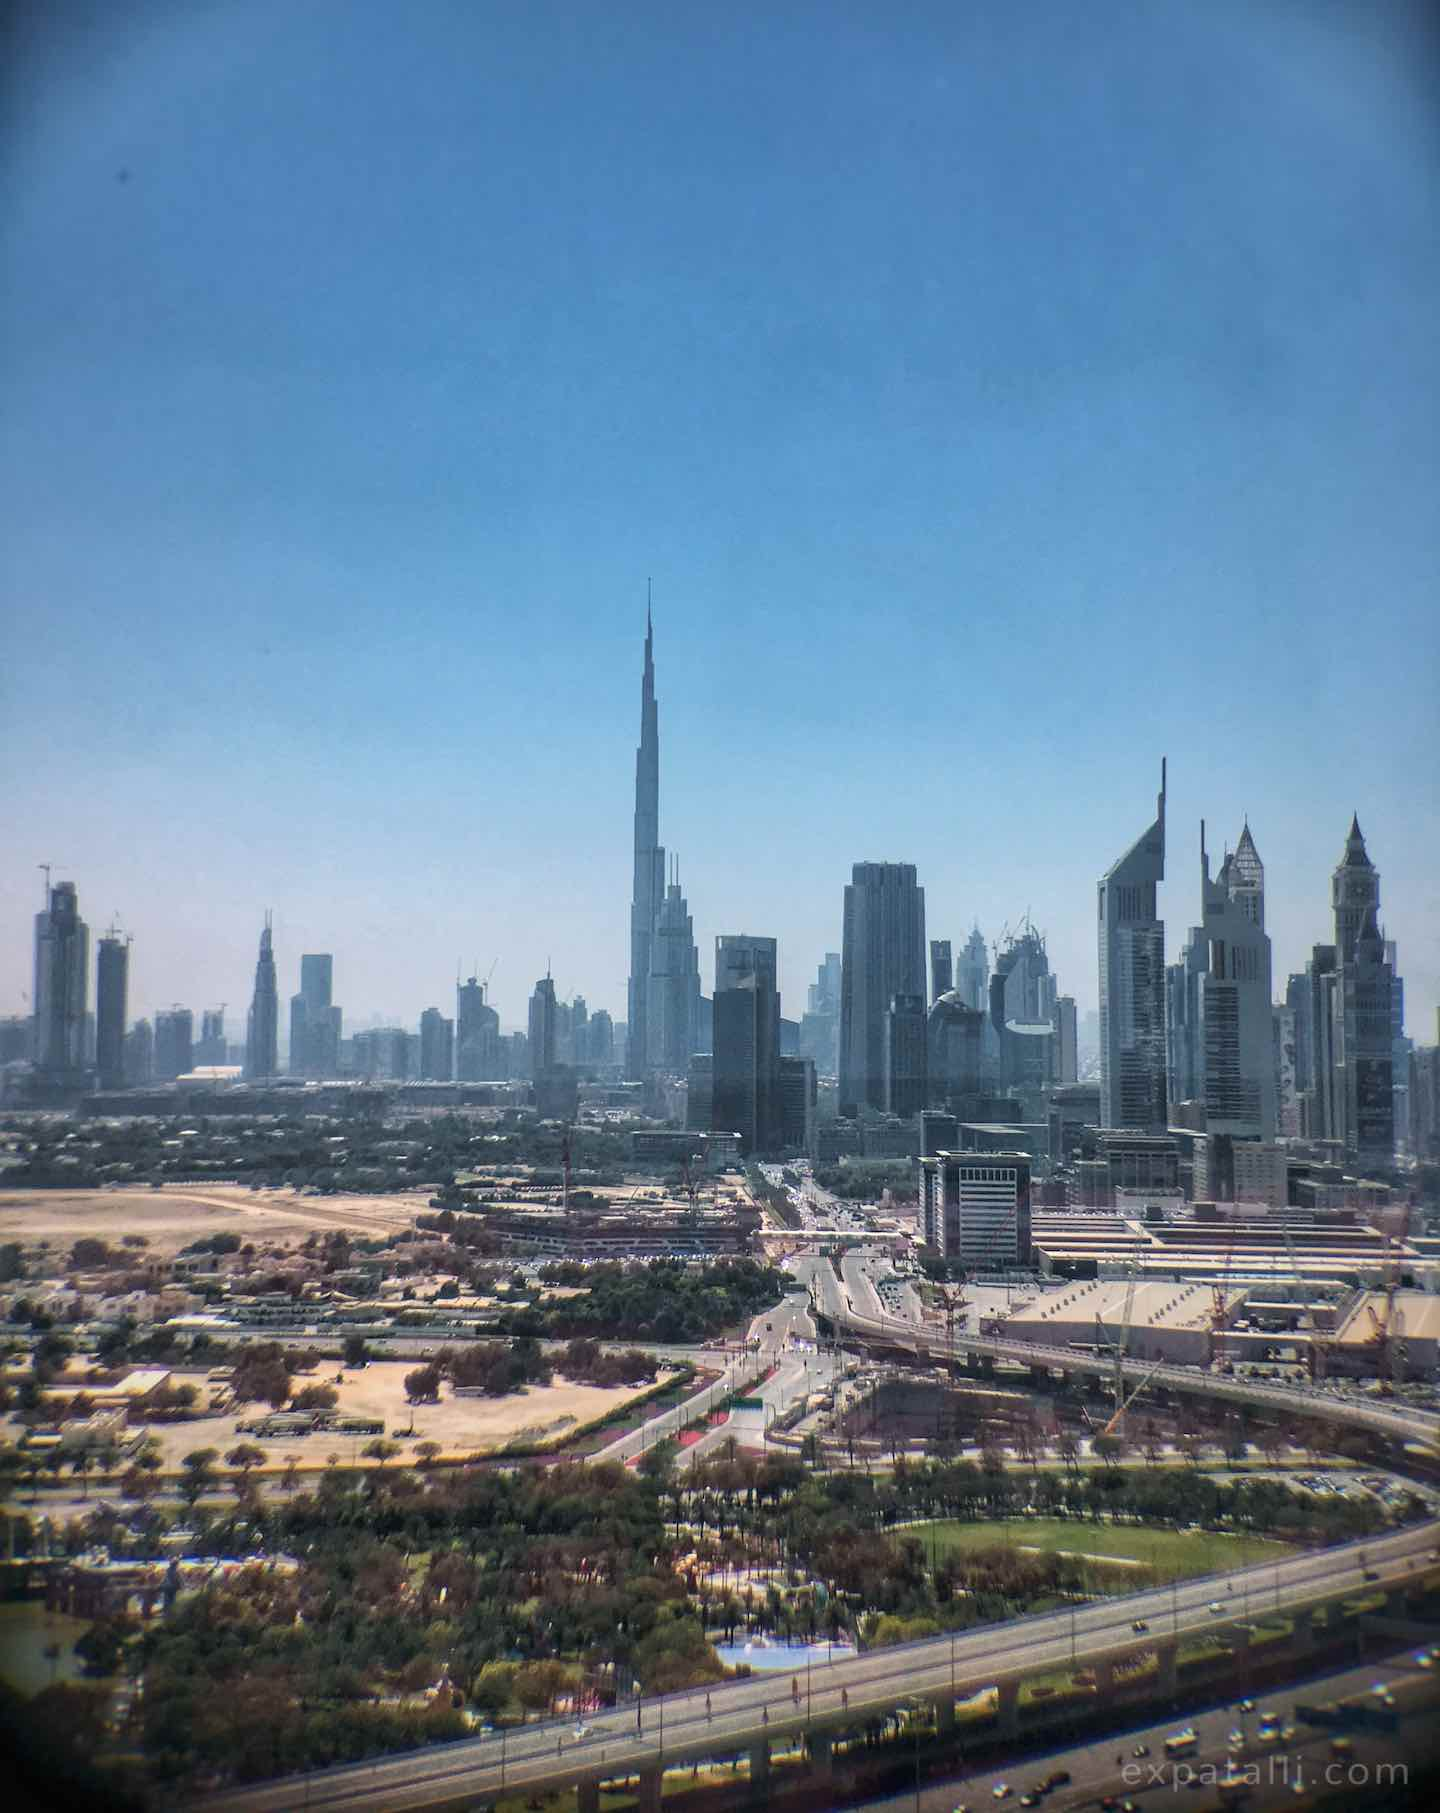 View of Downtown Dubai from the Dubai Frame | Image © ExpatAlli.com